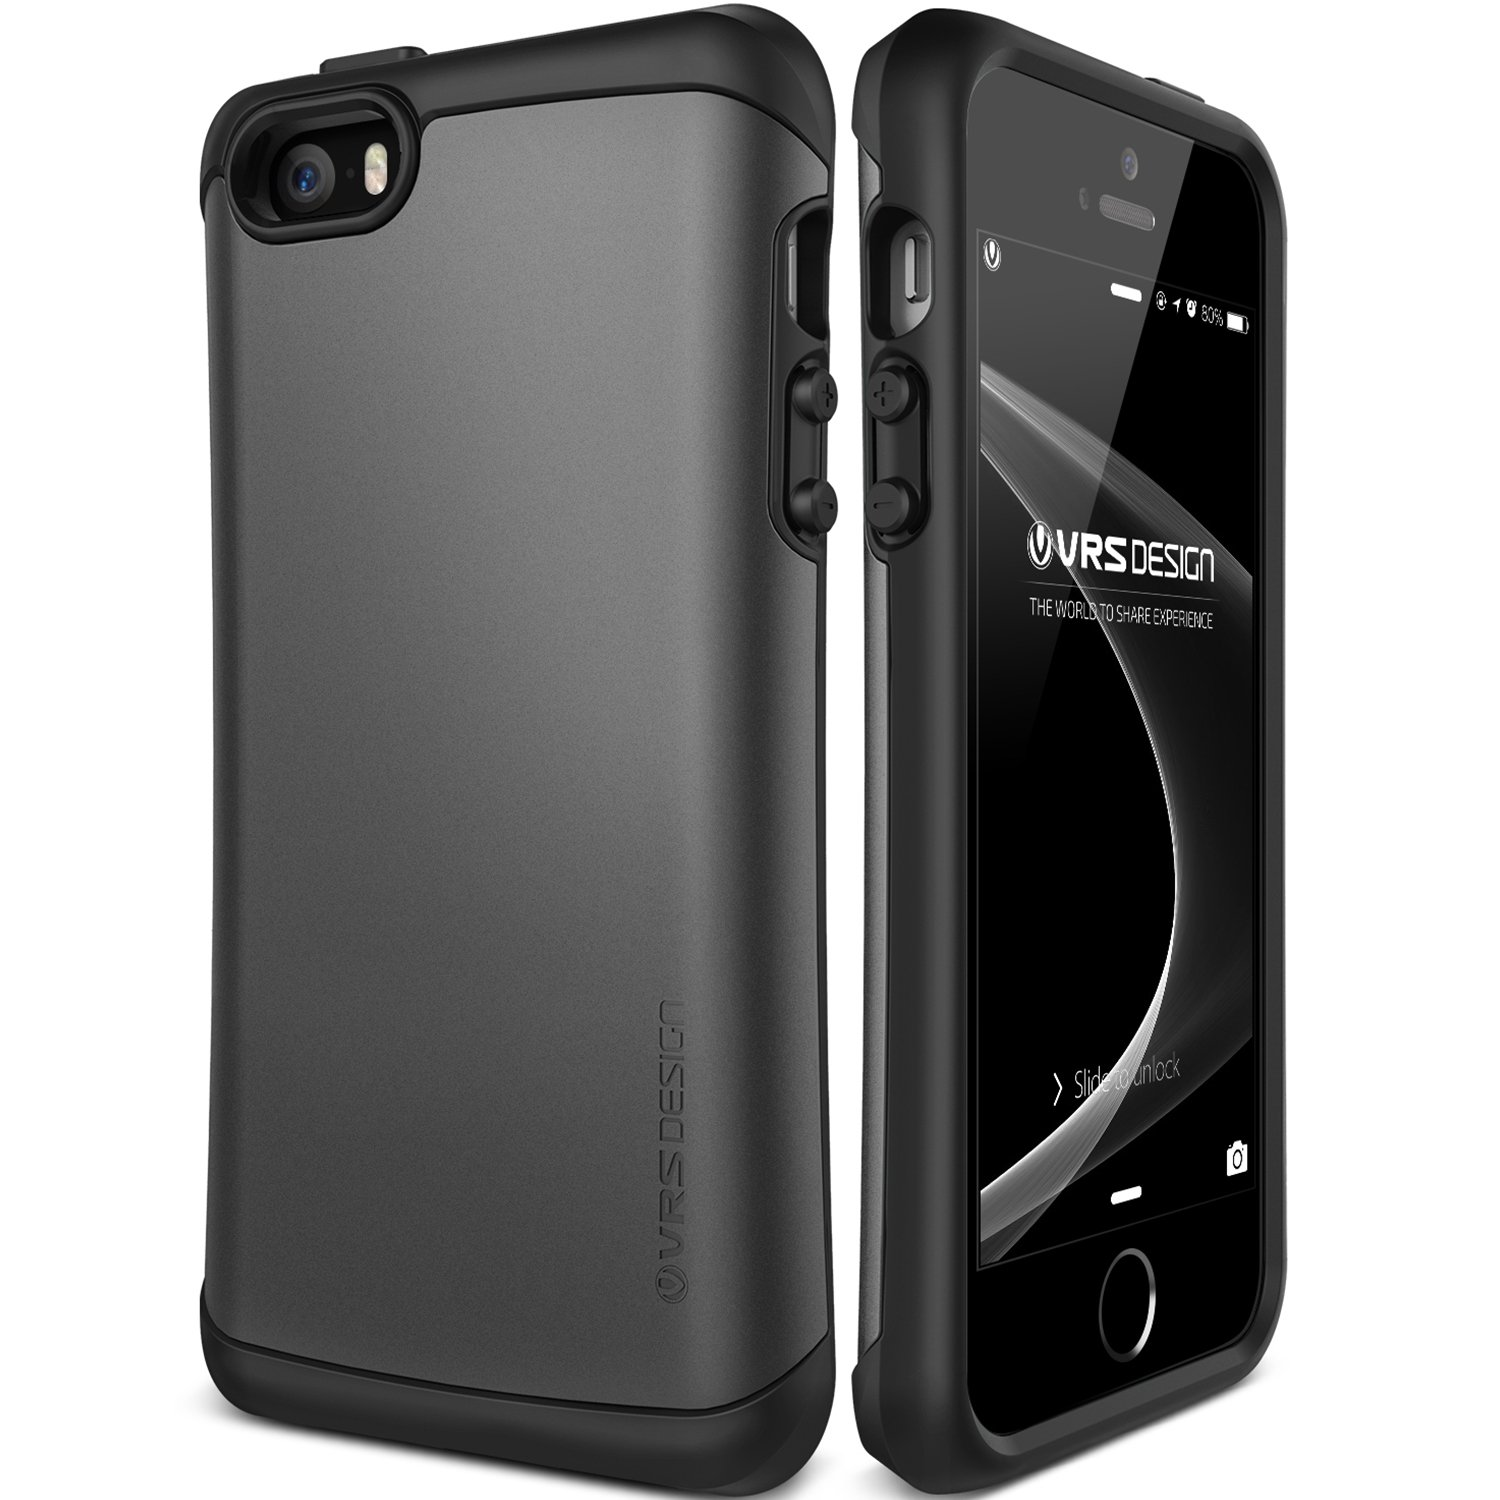 iPhone SE Case, VRS Design [Thor Series] Natural Grip Cover with Military Grade Drop Protection for Apple iPhone SE 2016 - Dark Silver